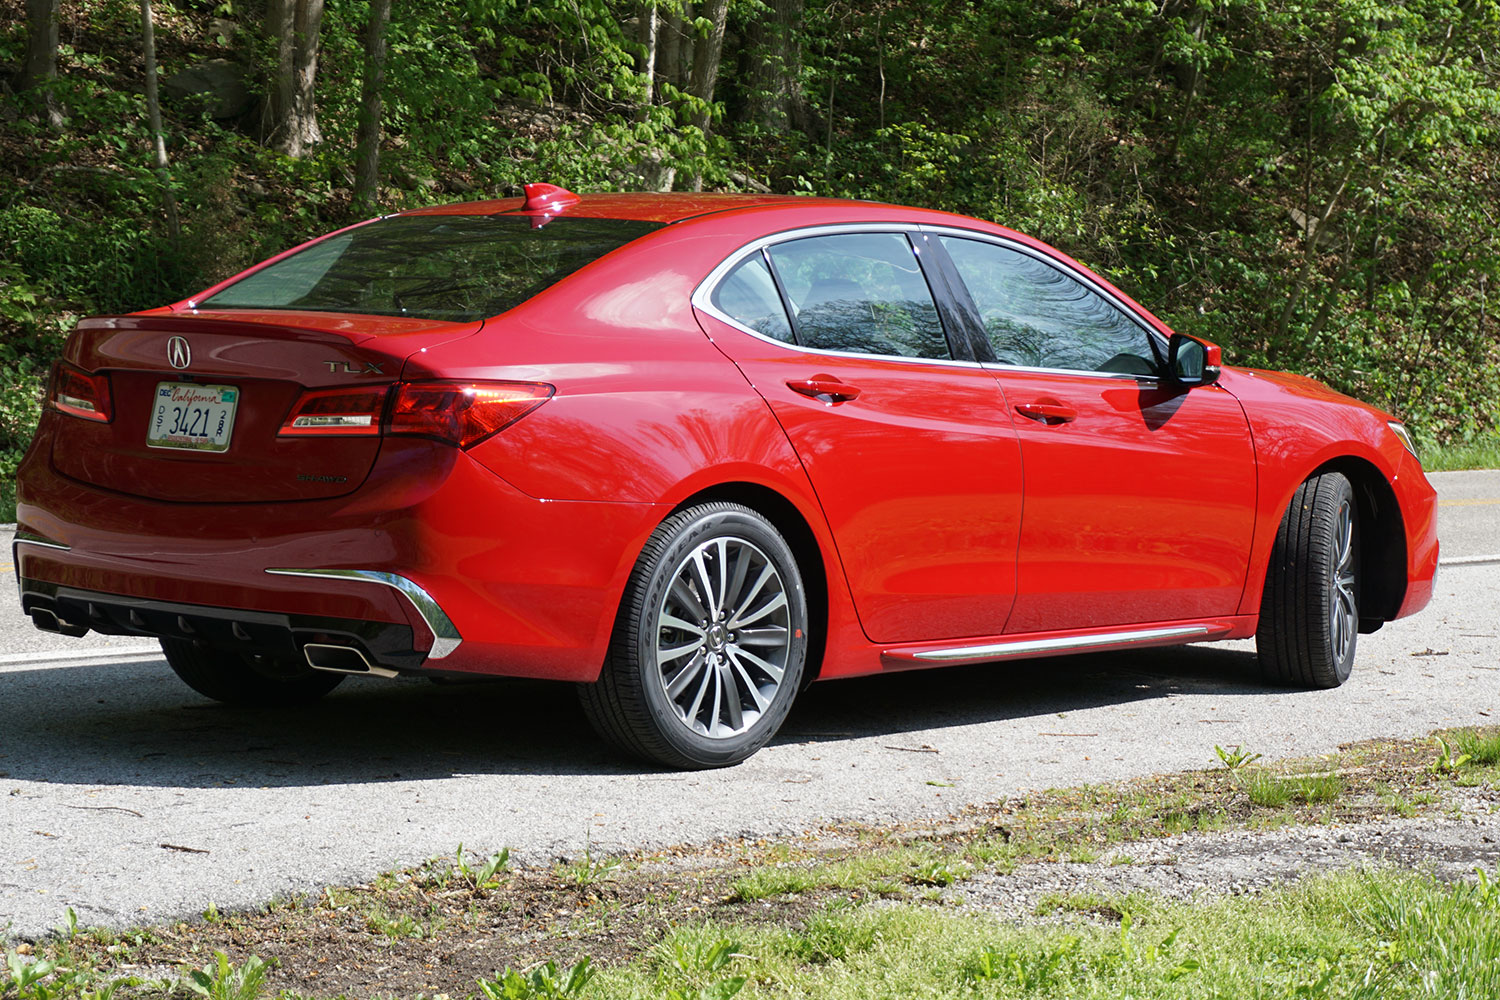 Tlx A Spec >> 2018 Acura TLX: First Drive Review | Digital Trends